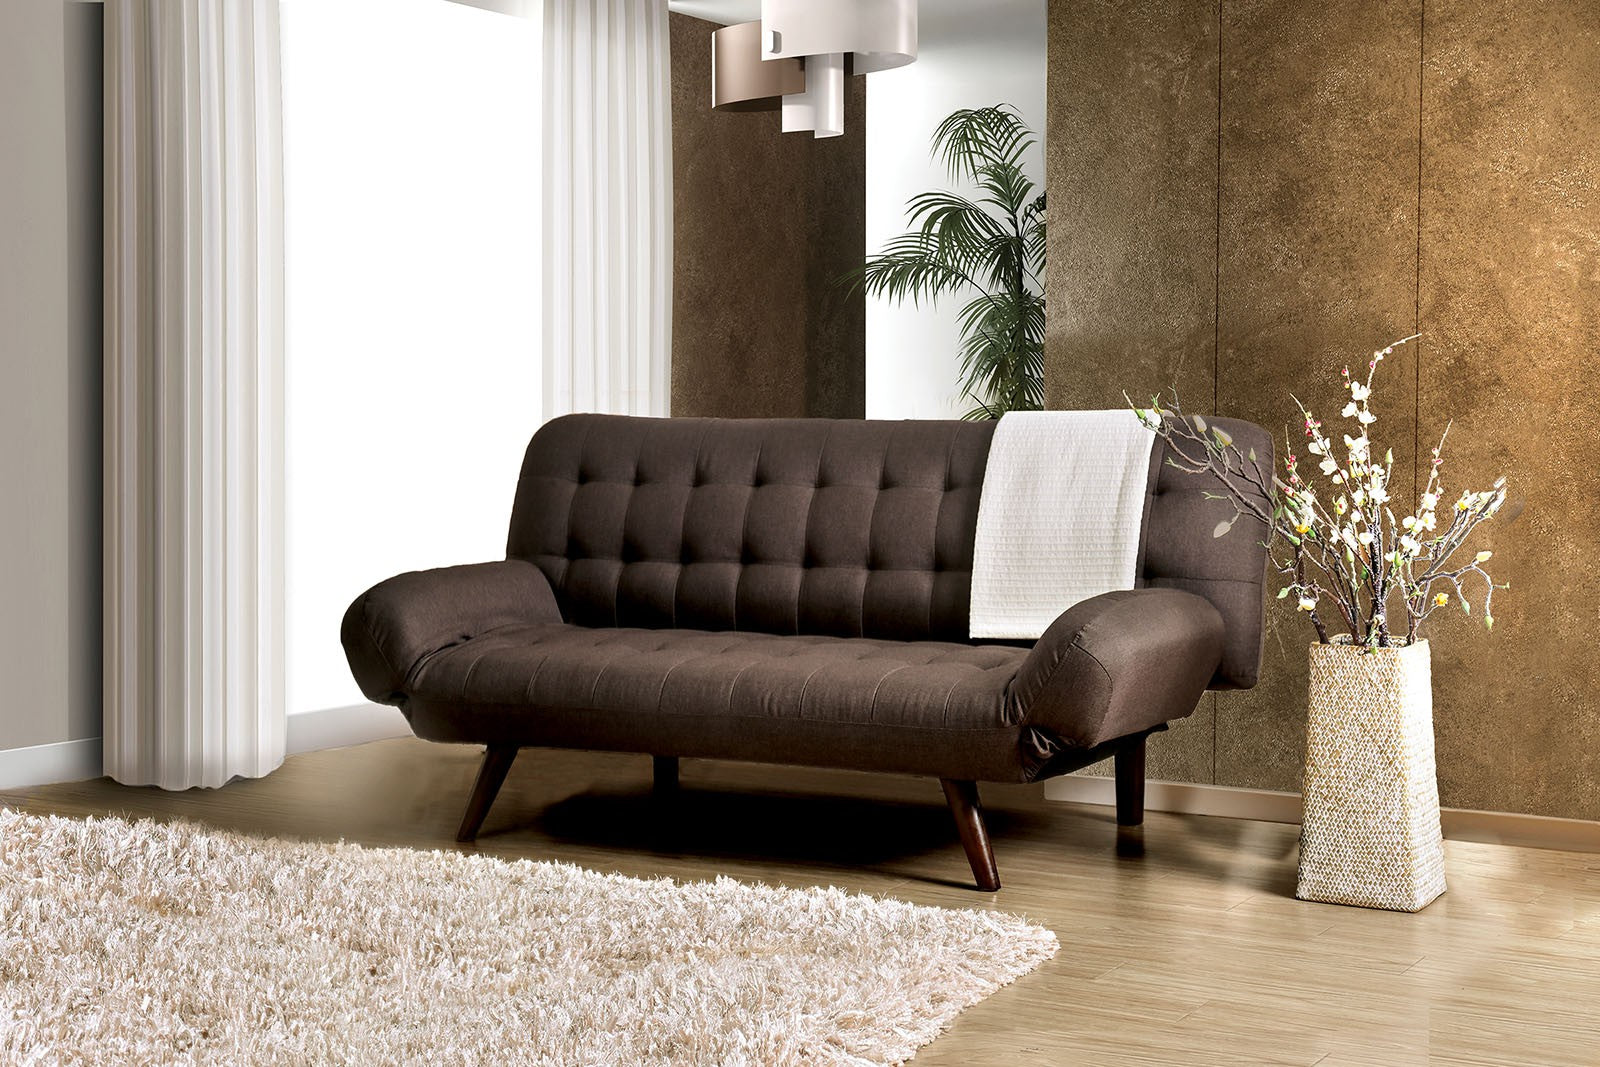 pin waltz move value air city bed sofa furniture gray bel couch futon